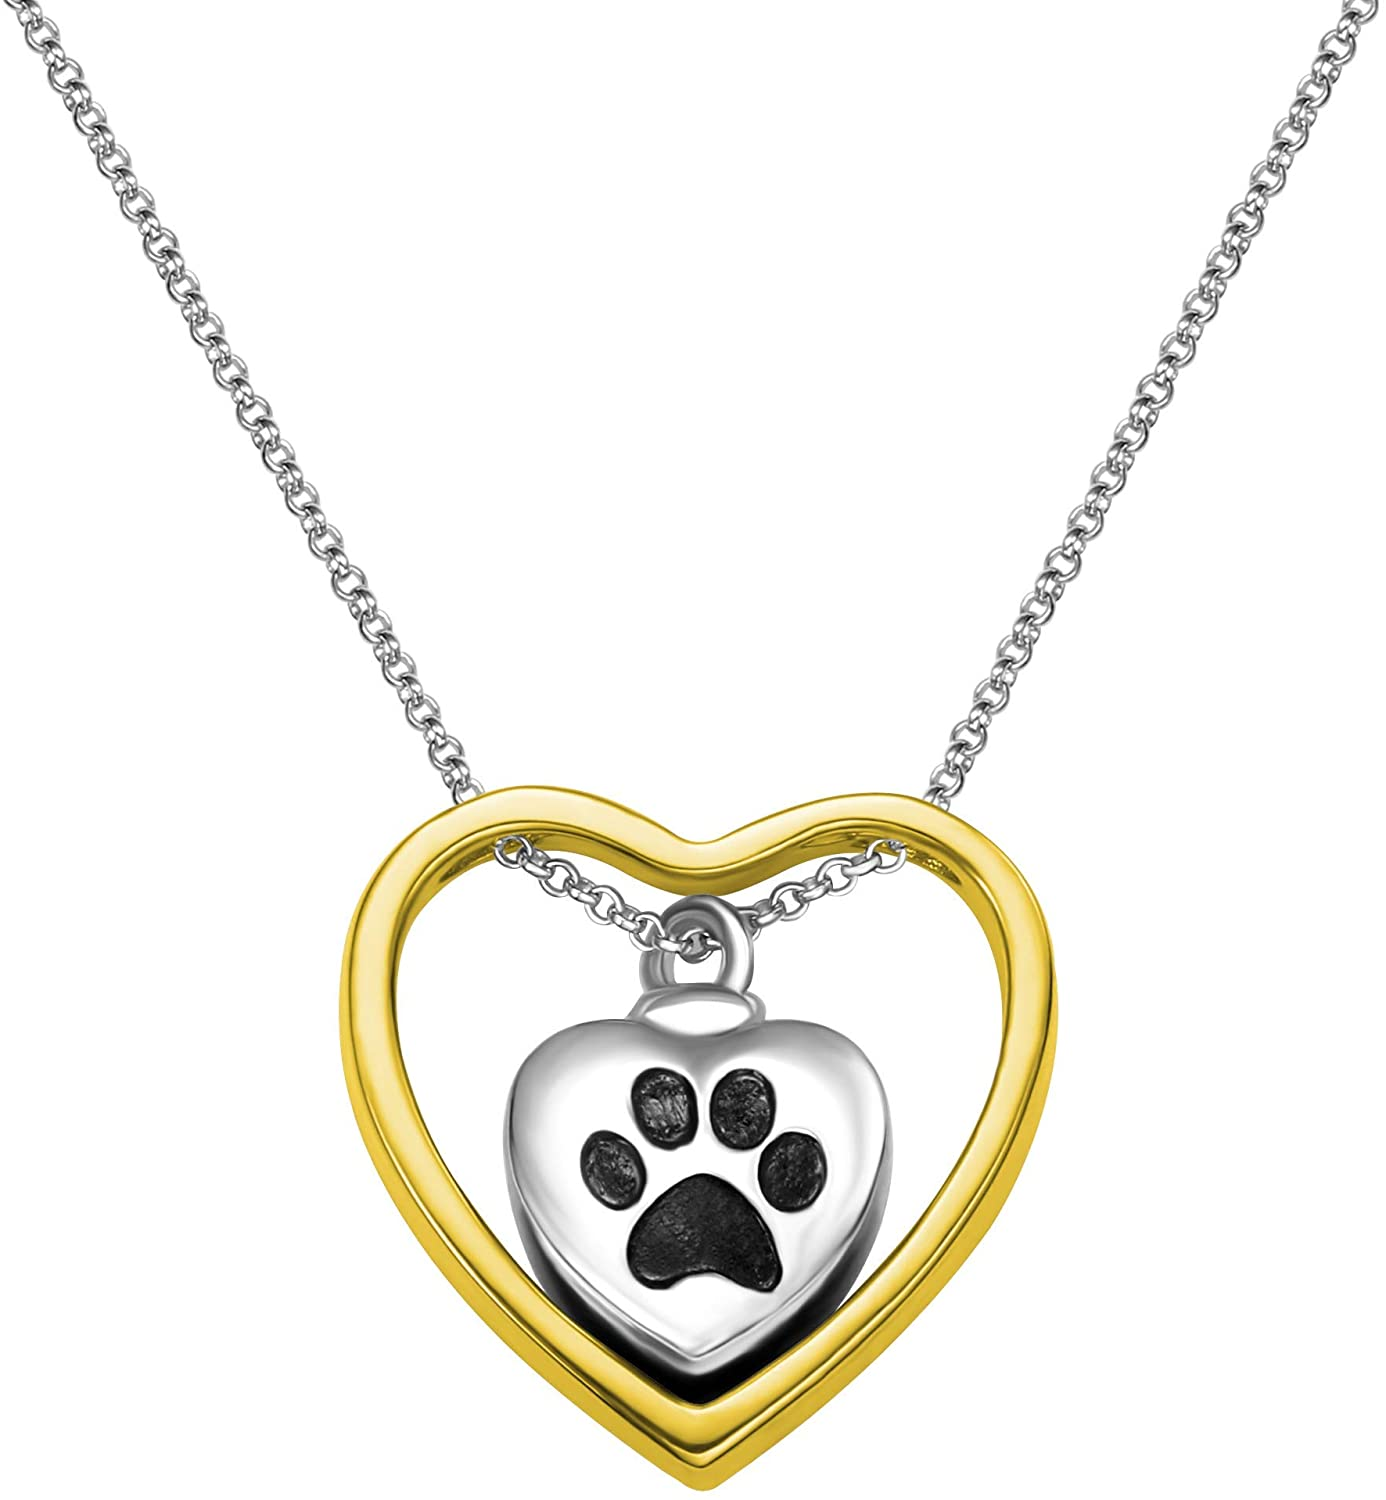 AILIN Personalized Dog Pet Paw Print-Cremation Jewelry Keepsake Memorial Charm Love You Forever Urn Necklace for Ashes